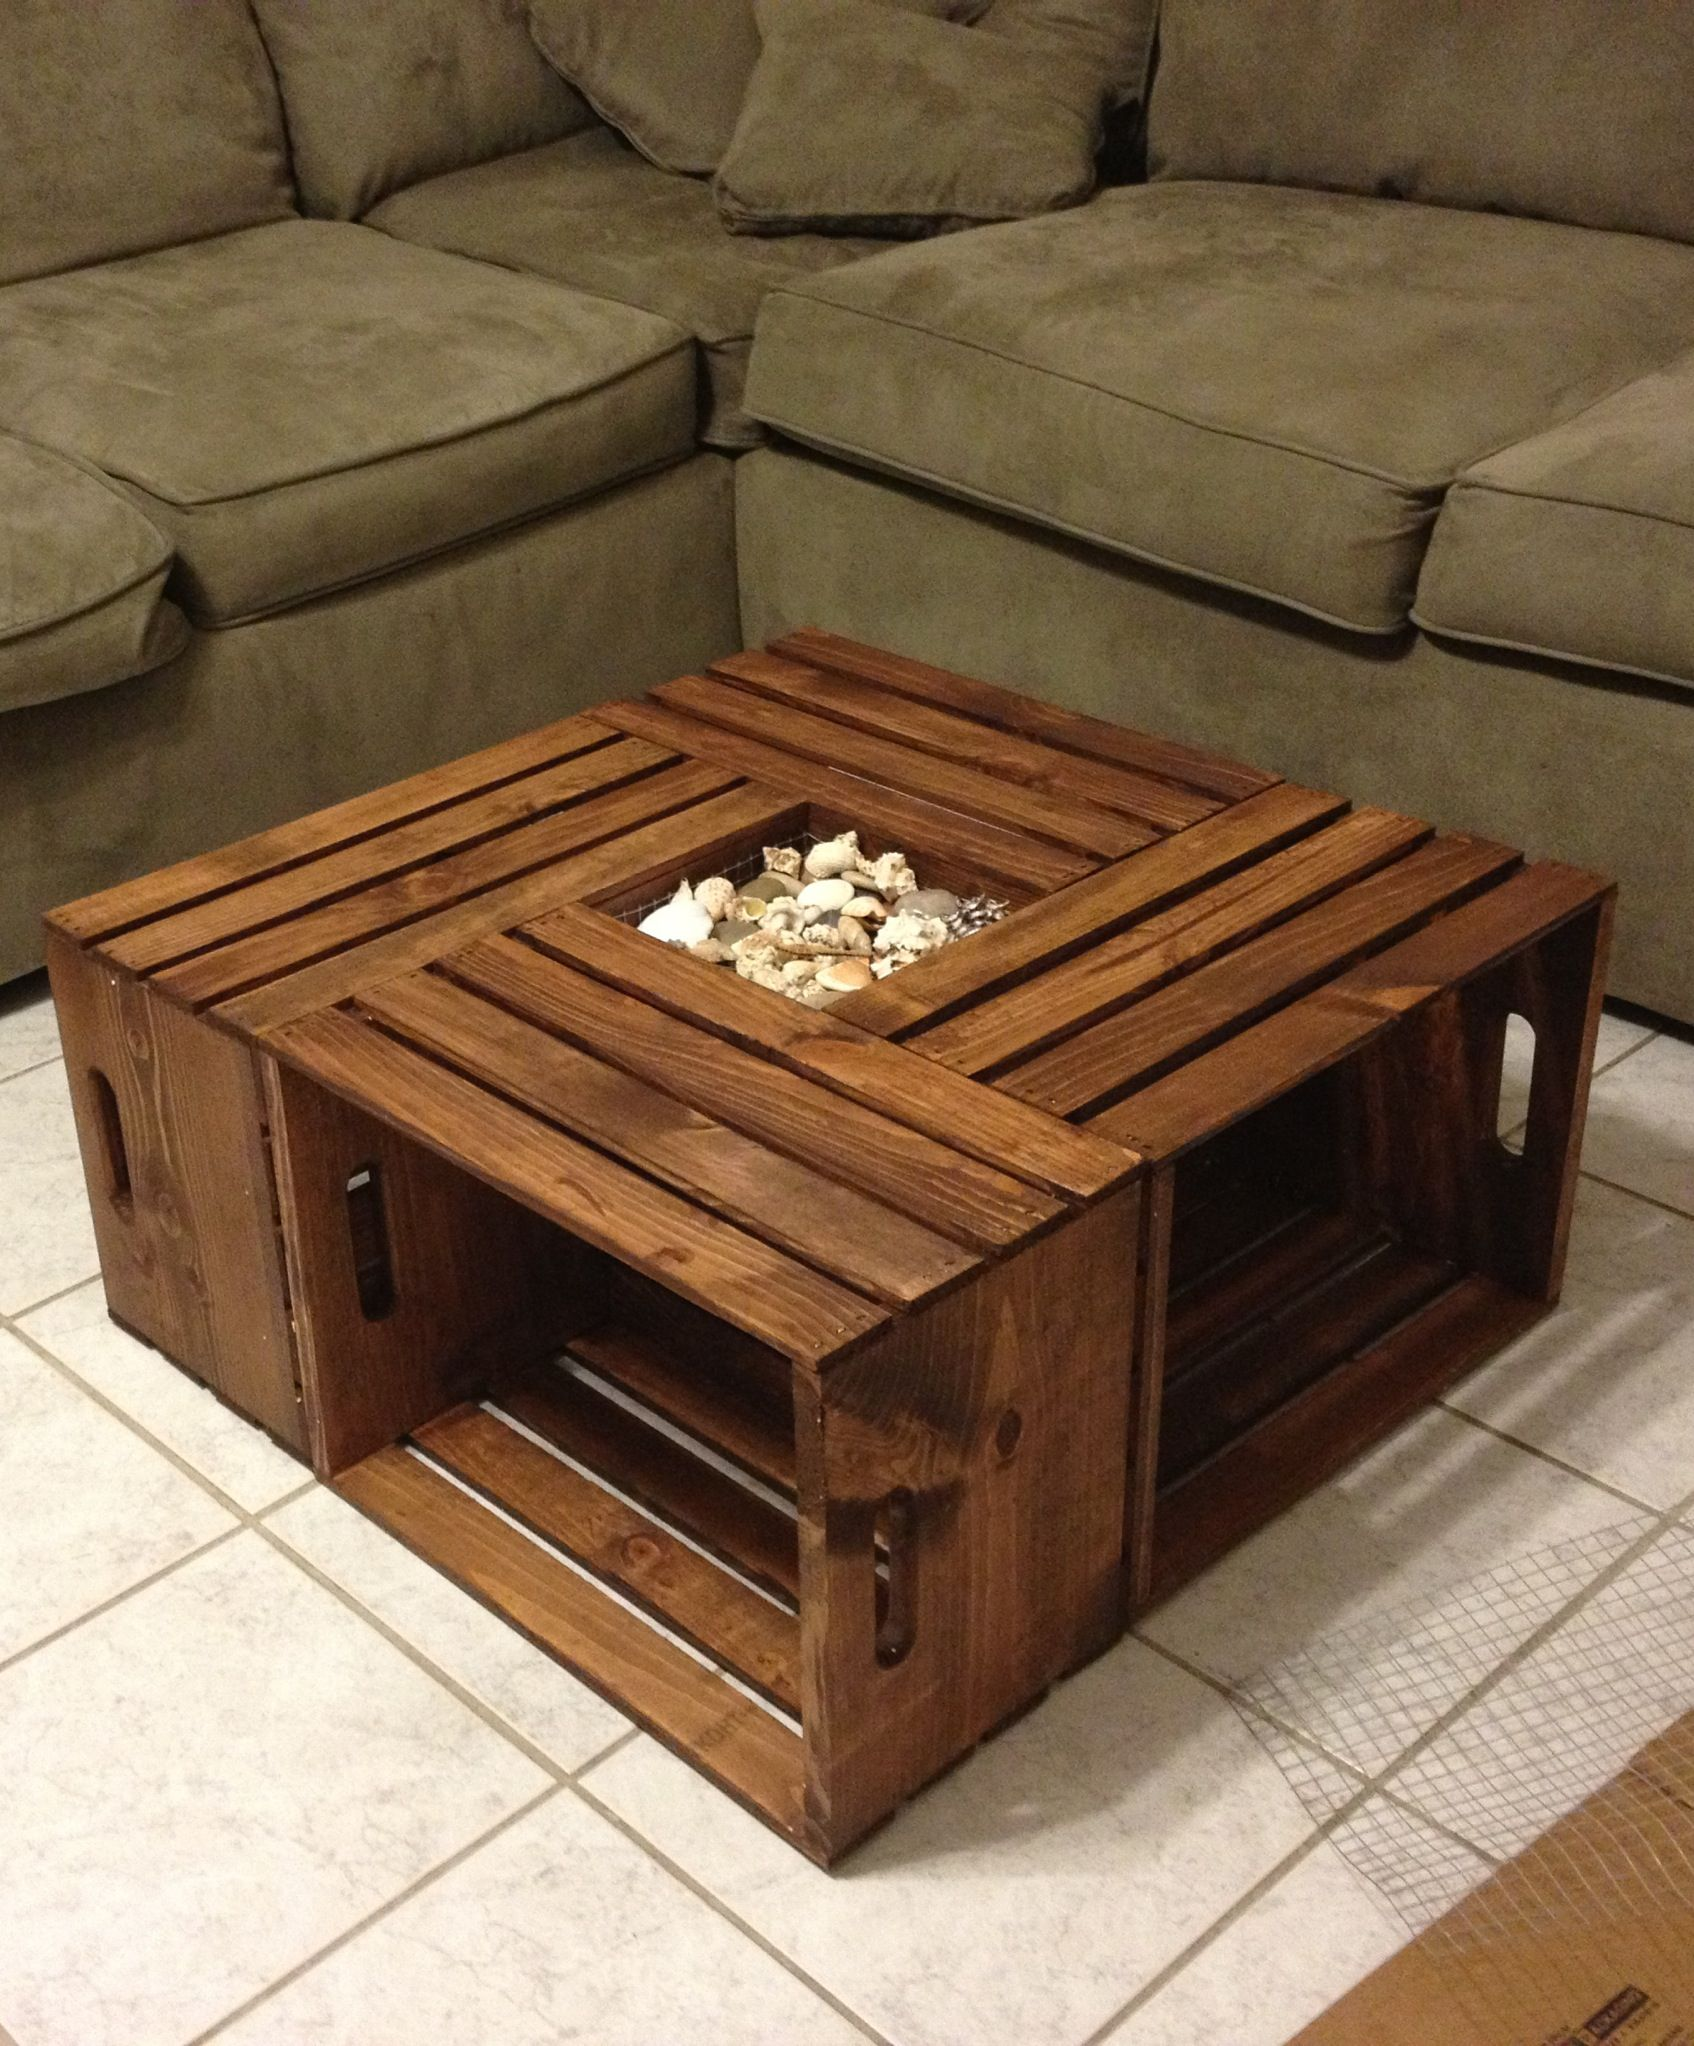 15 Unique Reclaimed Pallet Table Ideas Diy Coffee Table Varnishes And Crates